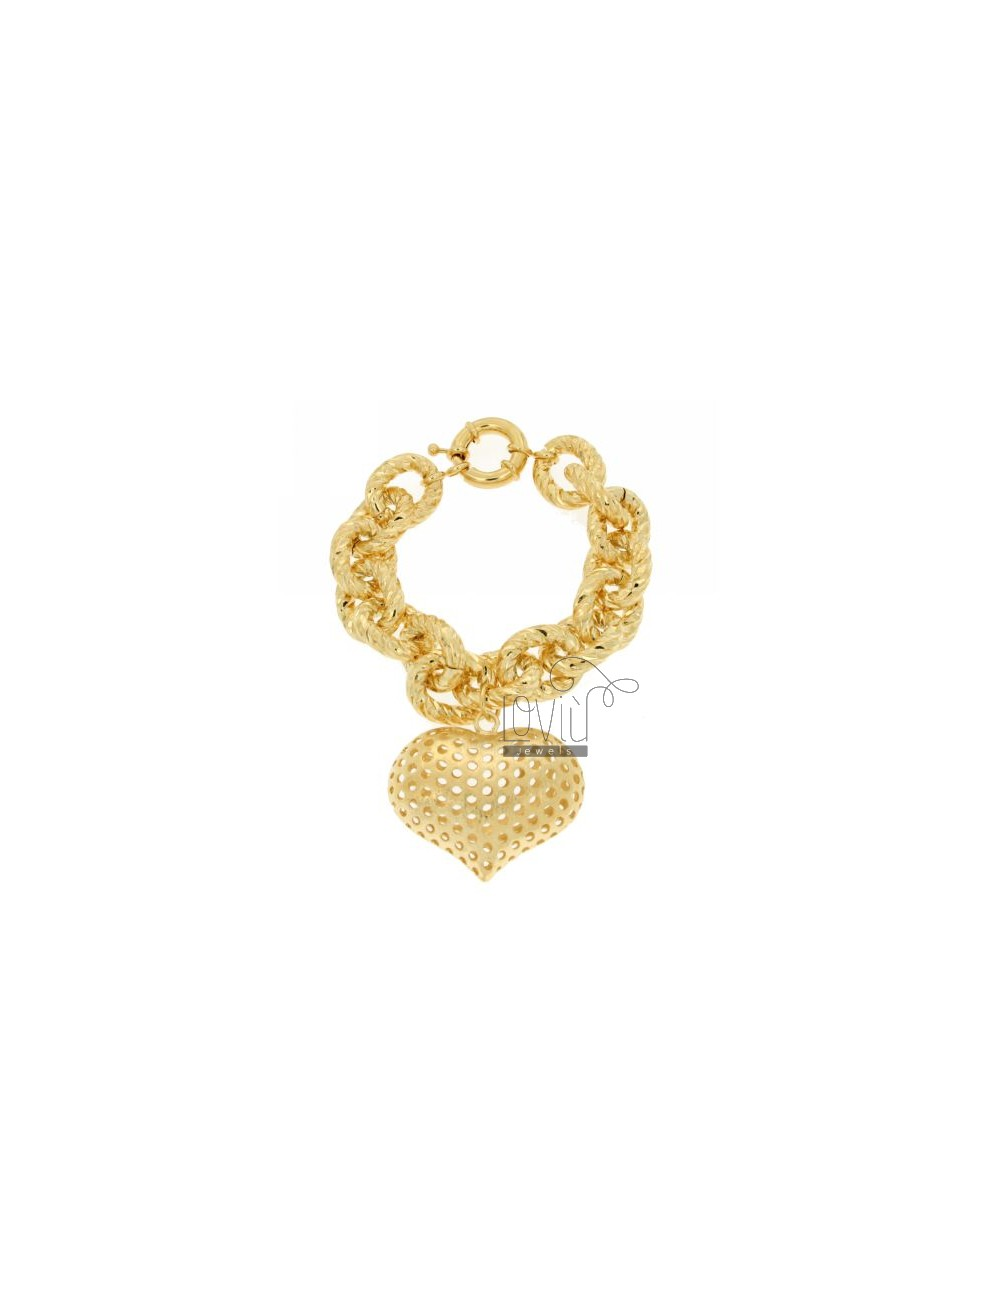 CABLE BRACELET WITH HEART PENDANT IN ALUMINIUM GOLD PLATED